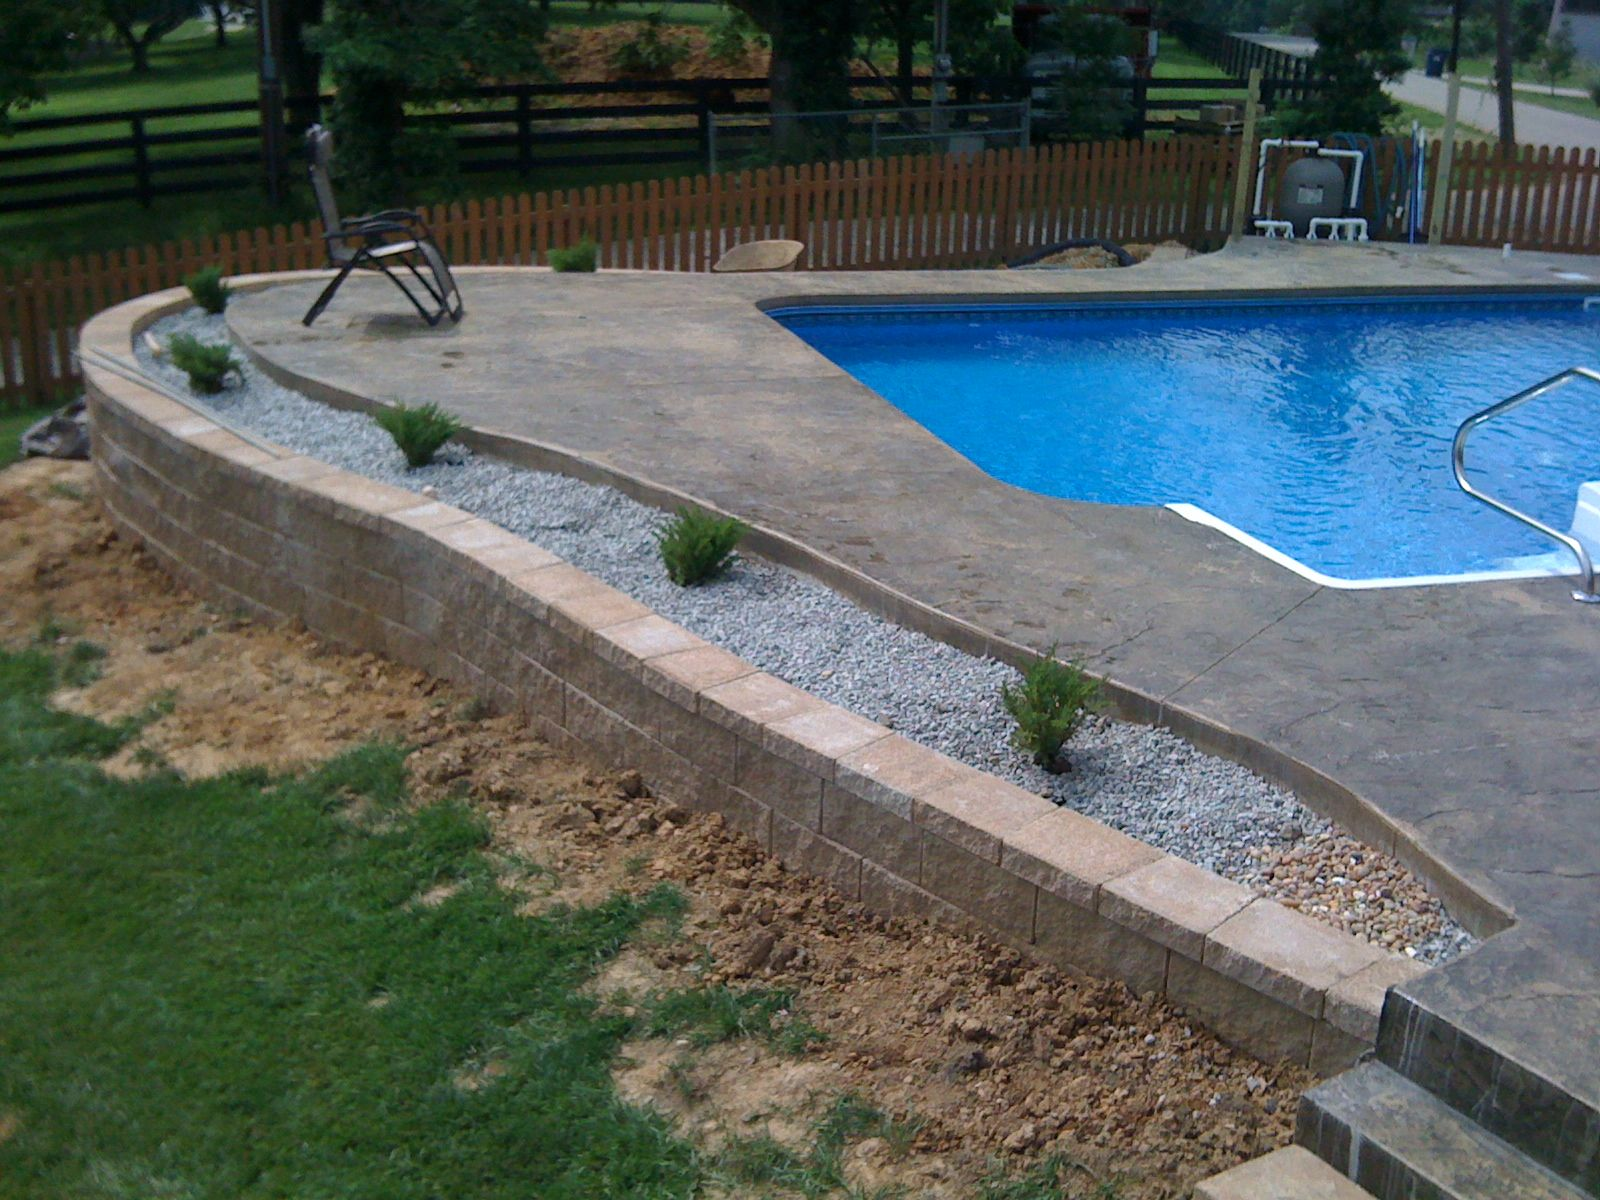 Backfilling Paver Pool Deck Inground Pool With Retaining Wall  An Inground Liner Pool With A